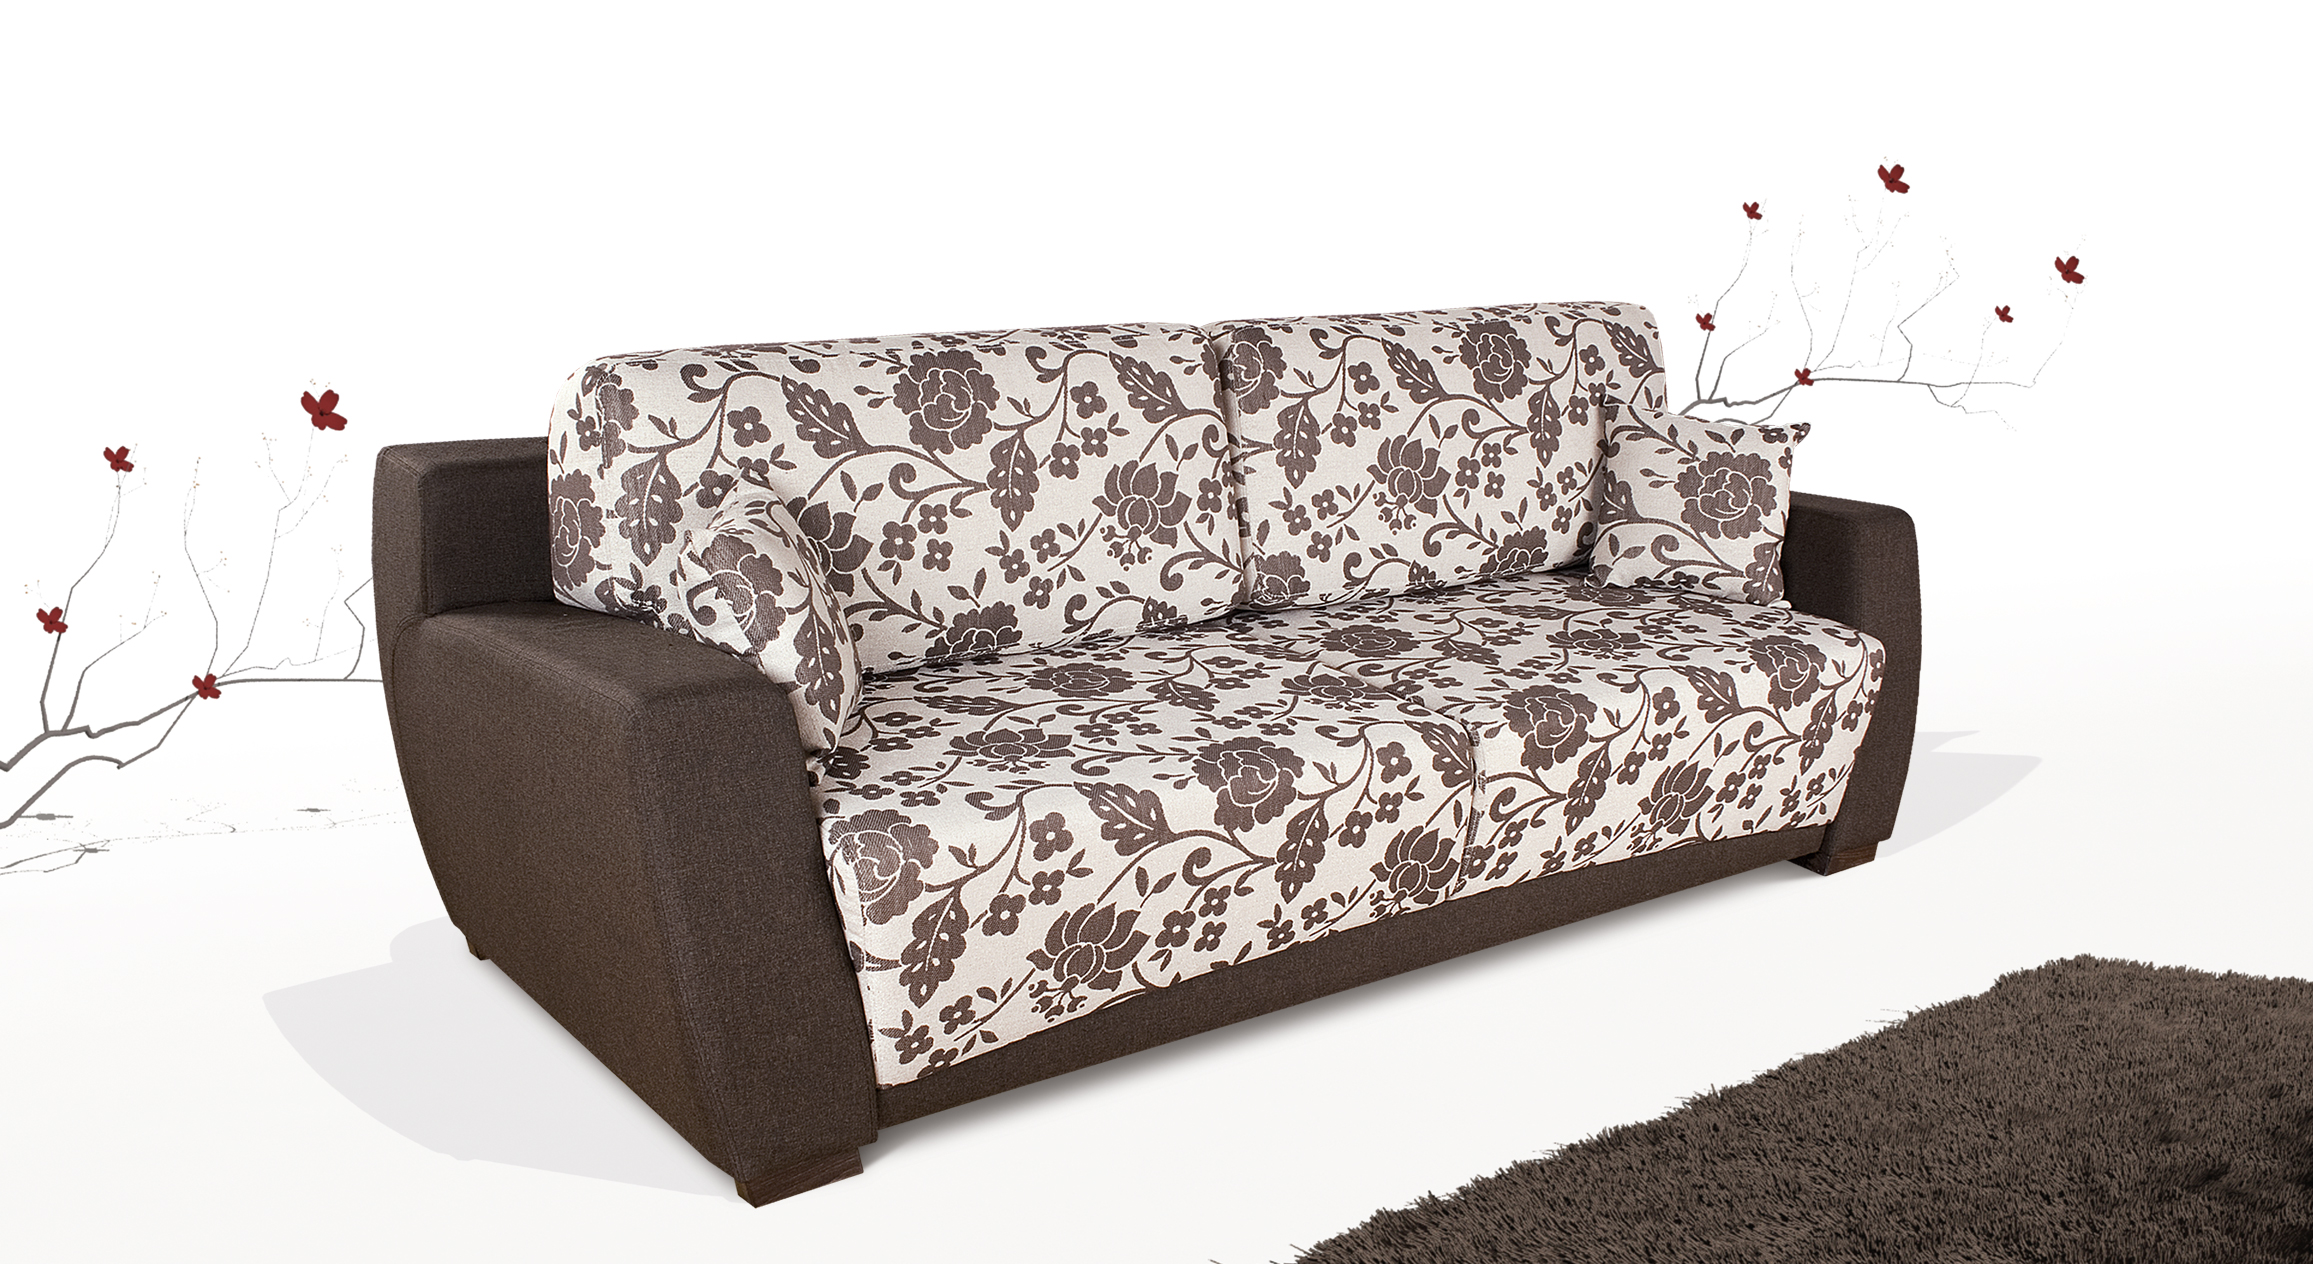 english sofa company manchester leather sectional with recliner and chaise диван quotМАНЧЕСТЪР quot Стандартни дивани от Руди Ан